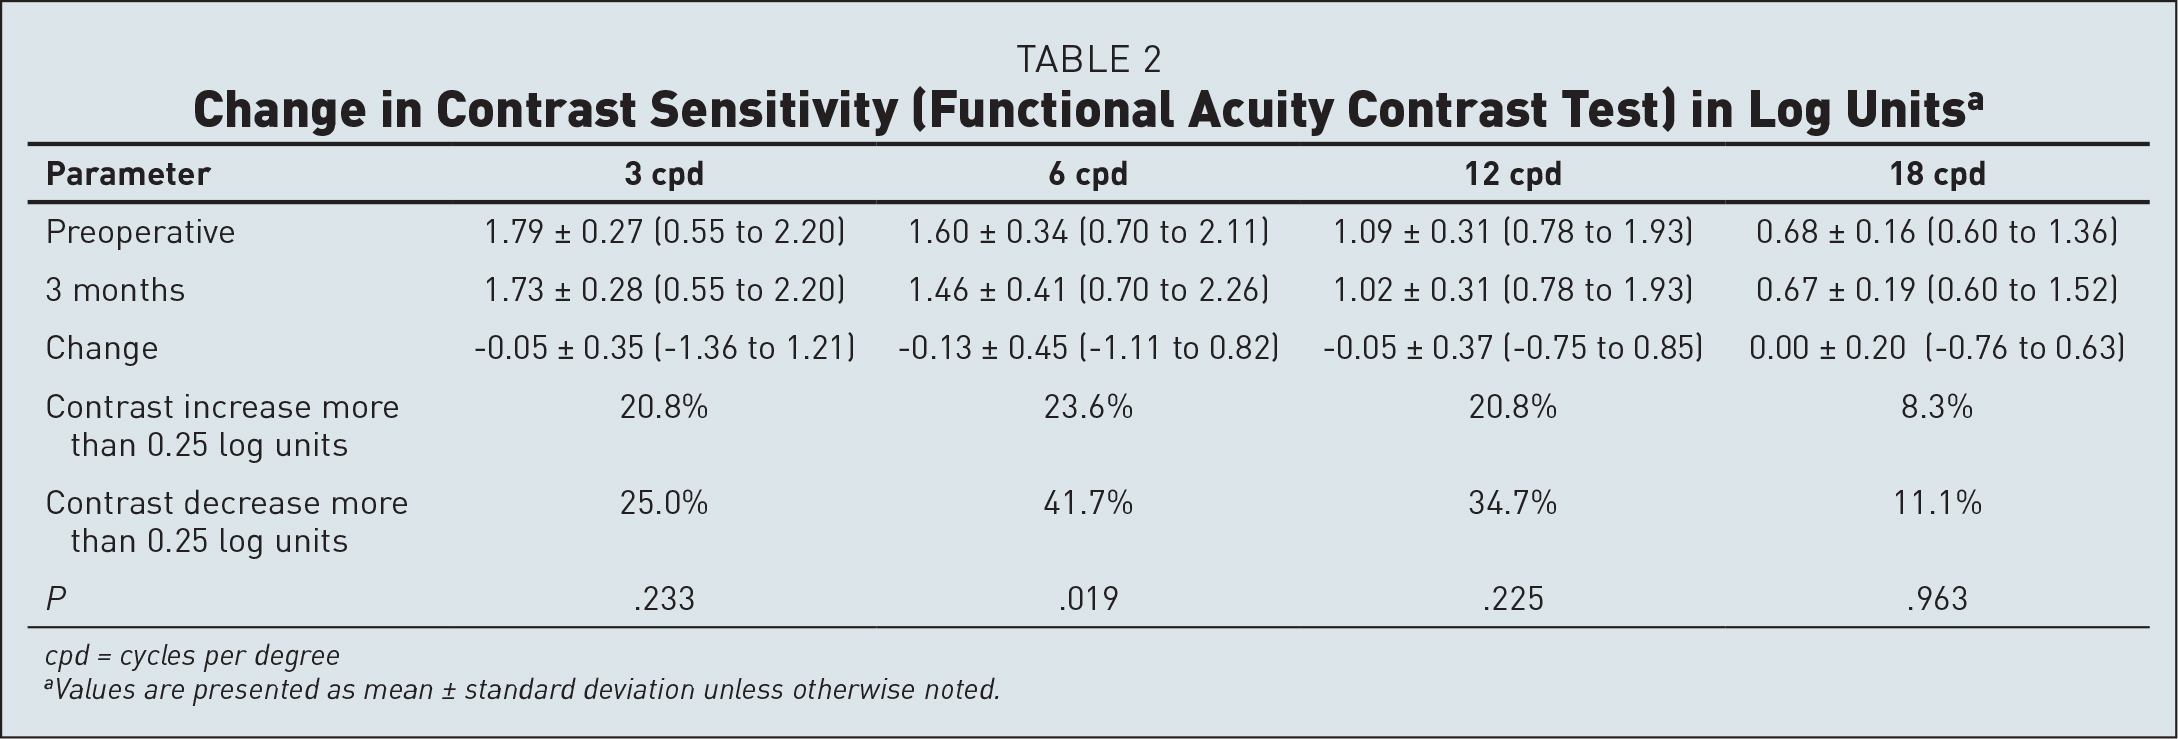 Change in Contrast Sensitivity (Functional Acuity Contrast Test) in Log Unitsa